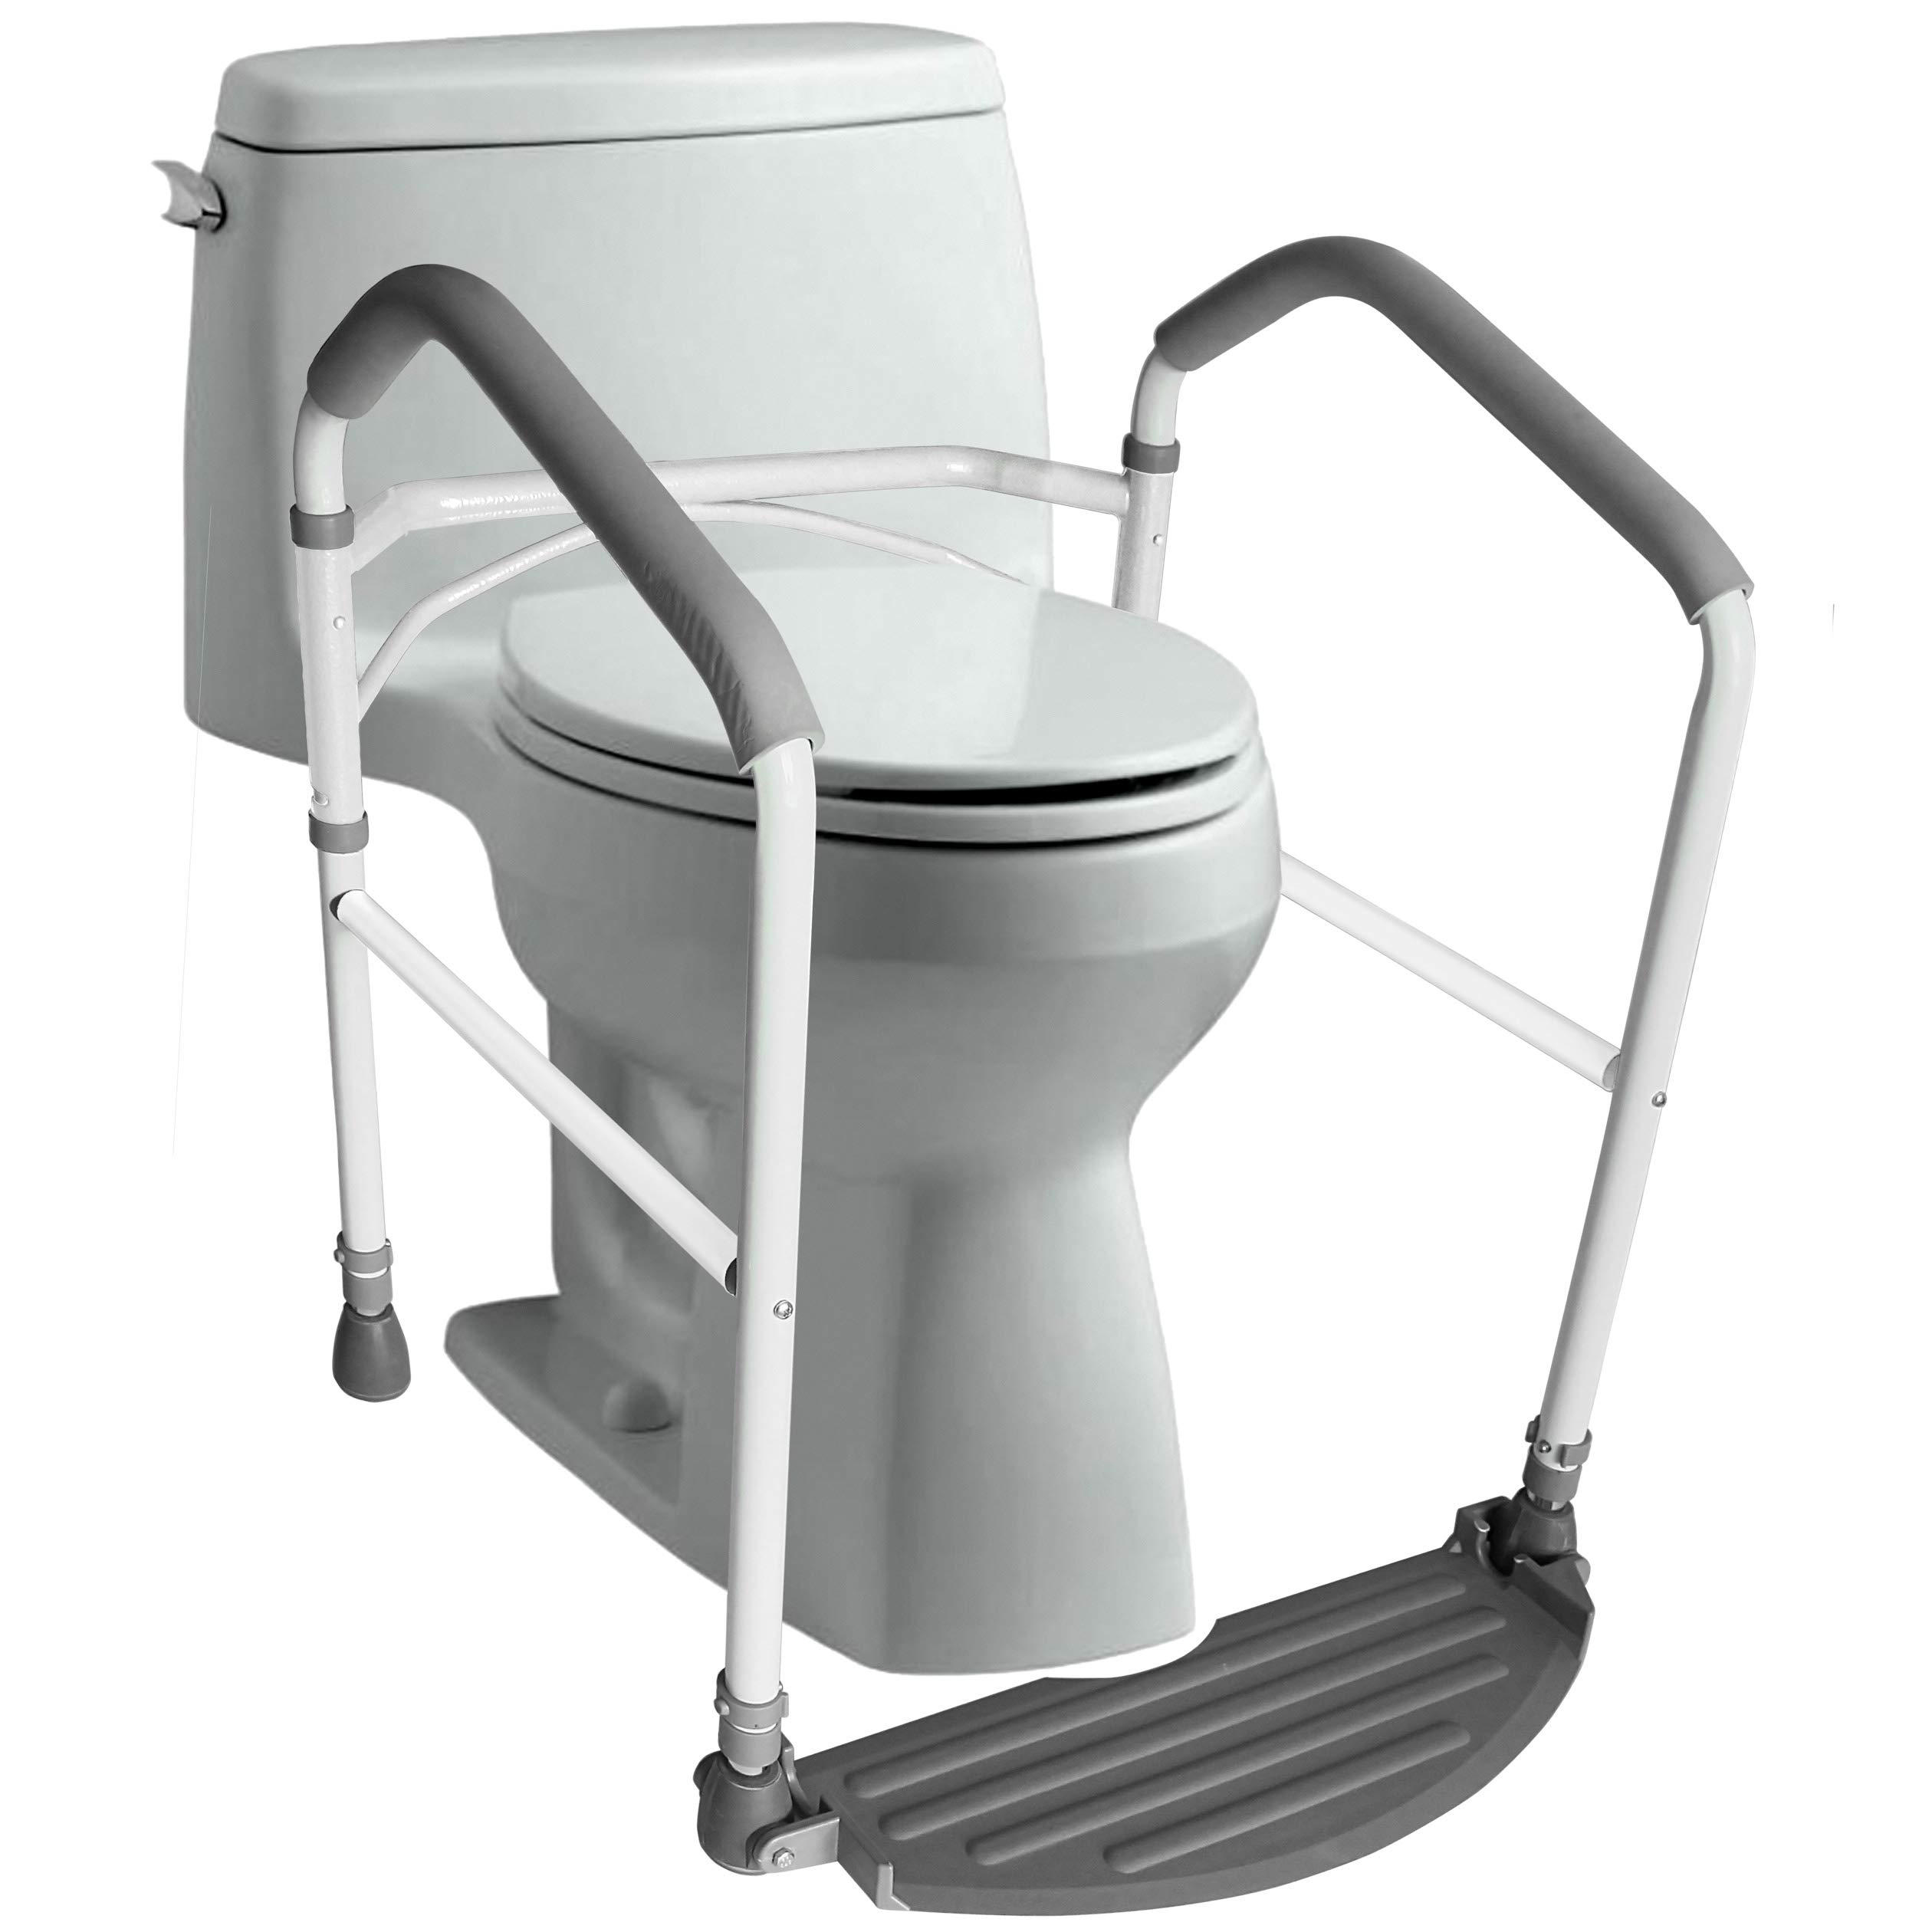 RMS Toilet Safety Frame & Rail - Folding & Portable Bathroom Safety Handrail Grab Bar with Adjustable Height (White) by RMS Royal Medical Solutions, Inc.